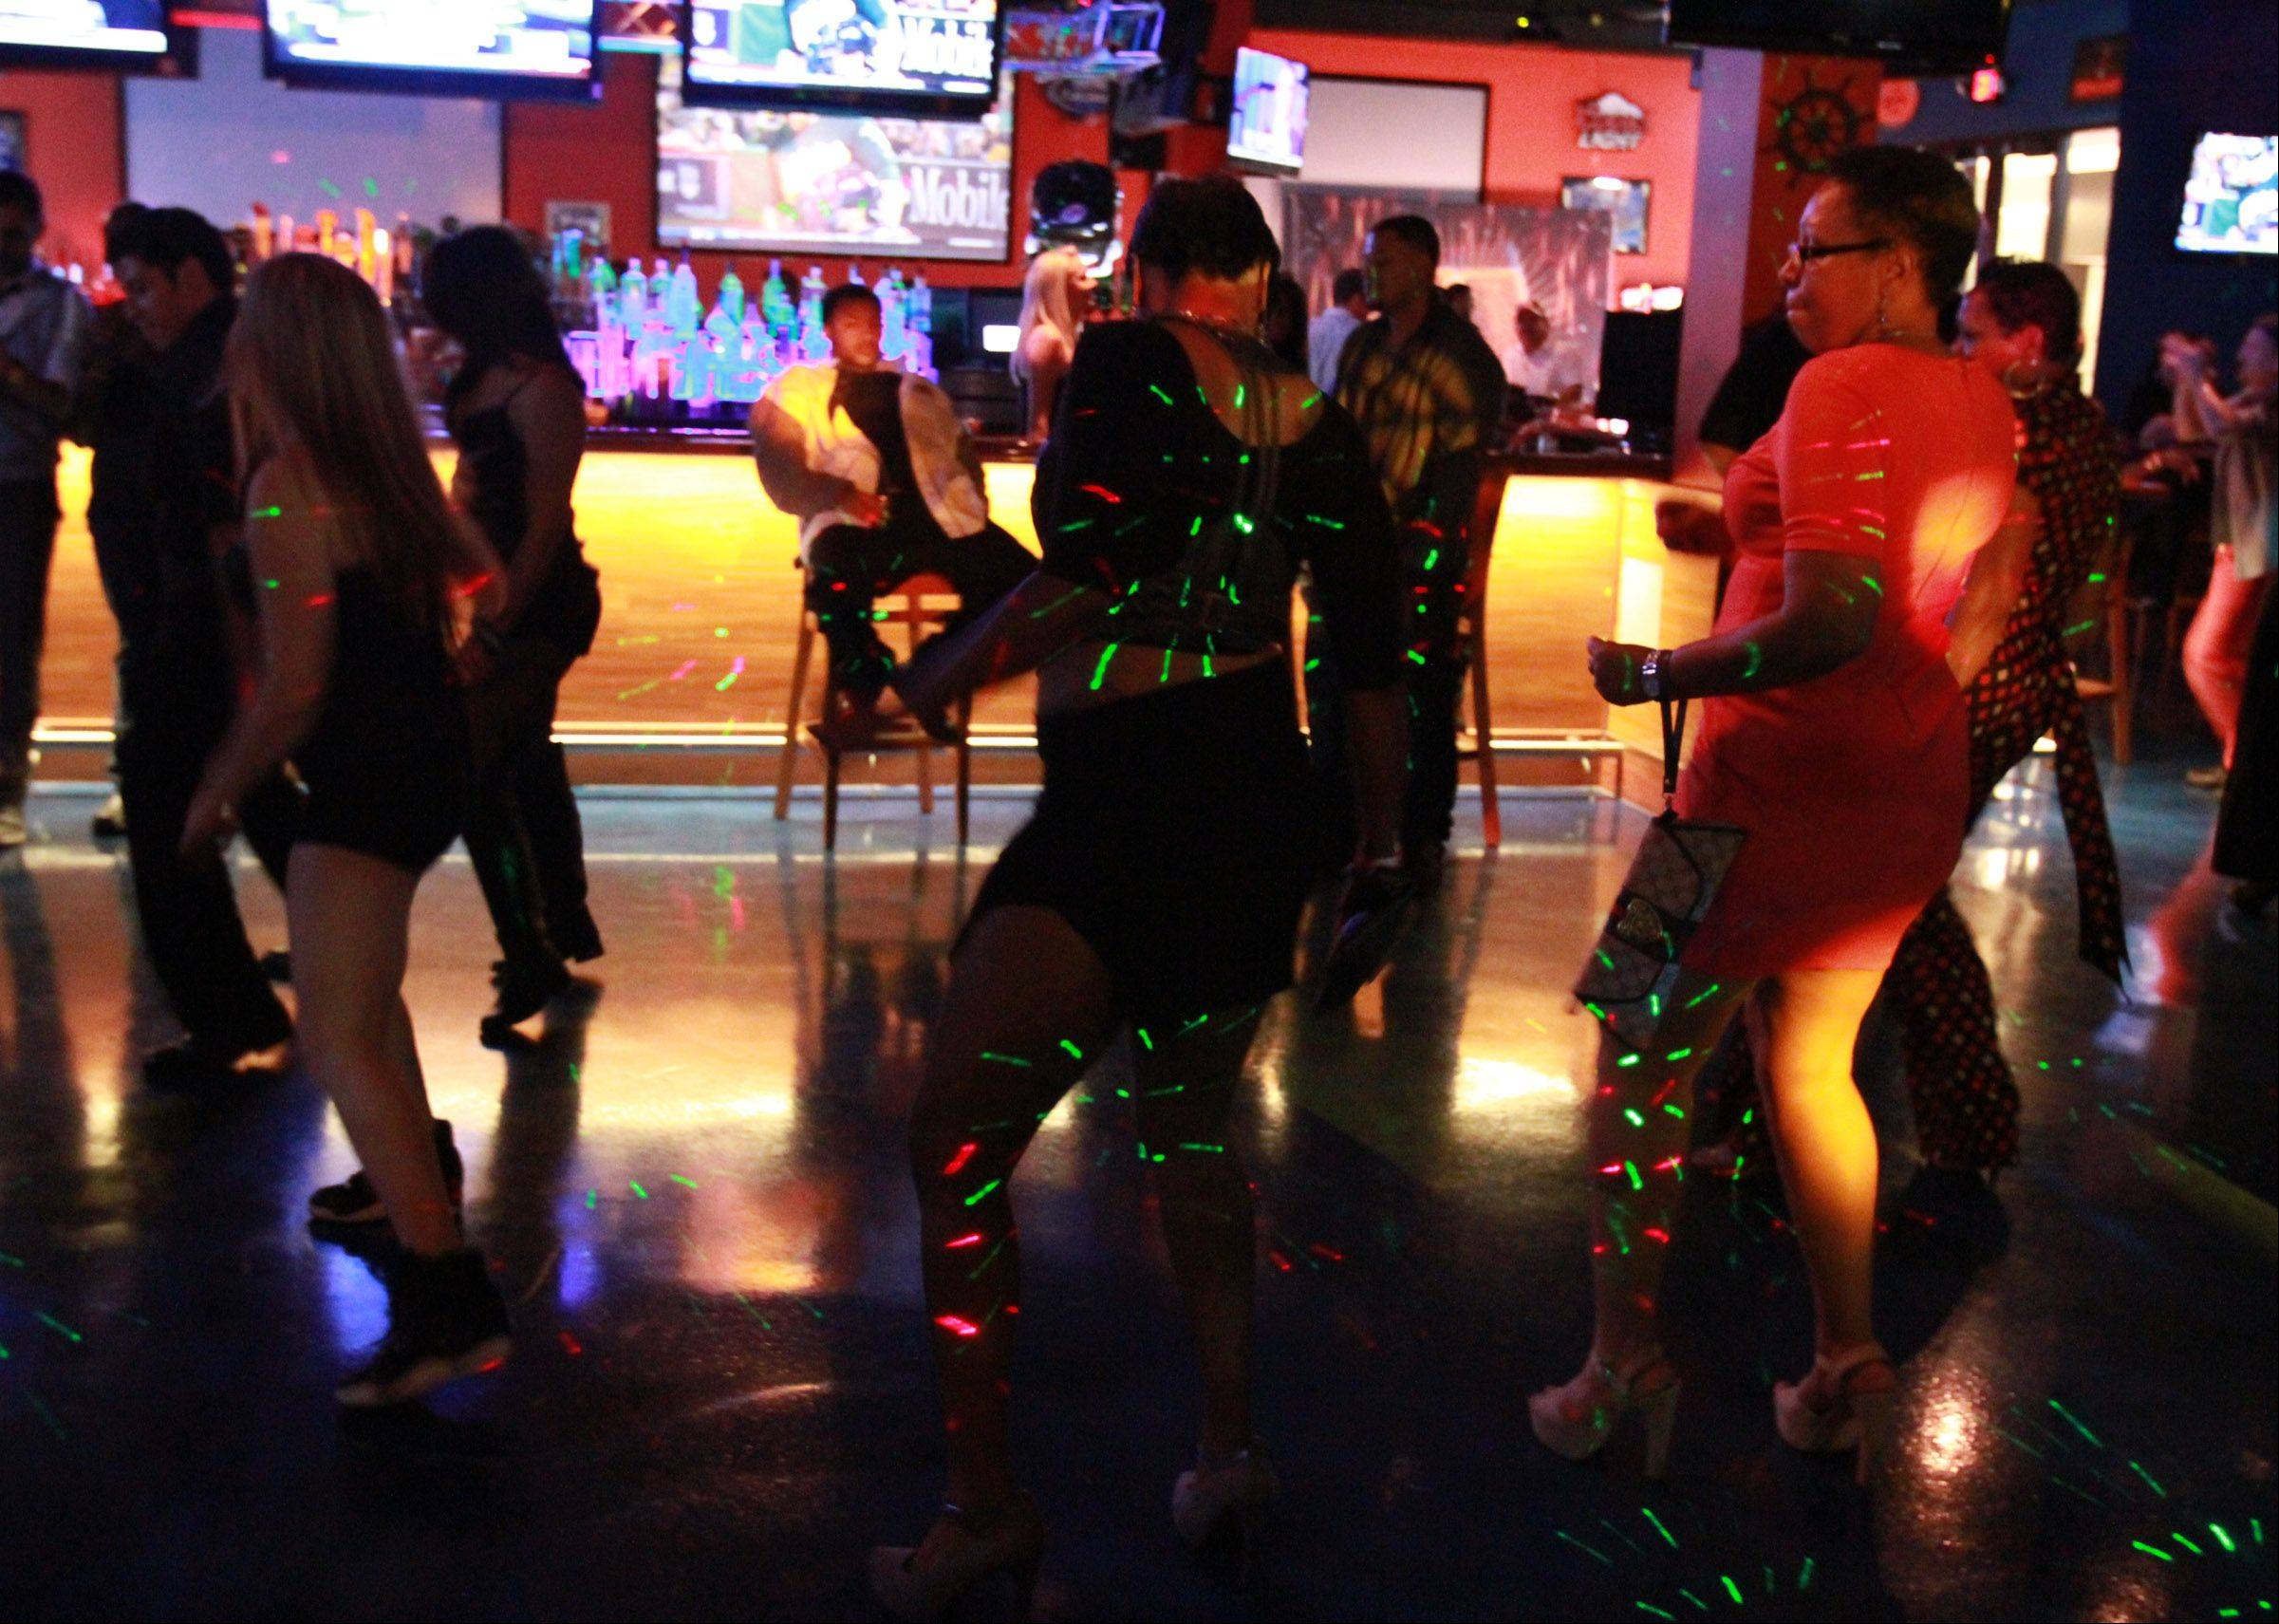 Patrons hit the dance floor at midnight at All Stars On Board in Vernon Hills.